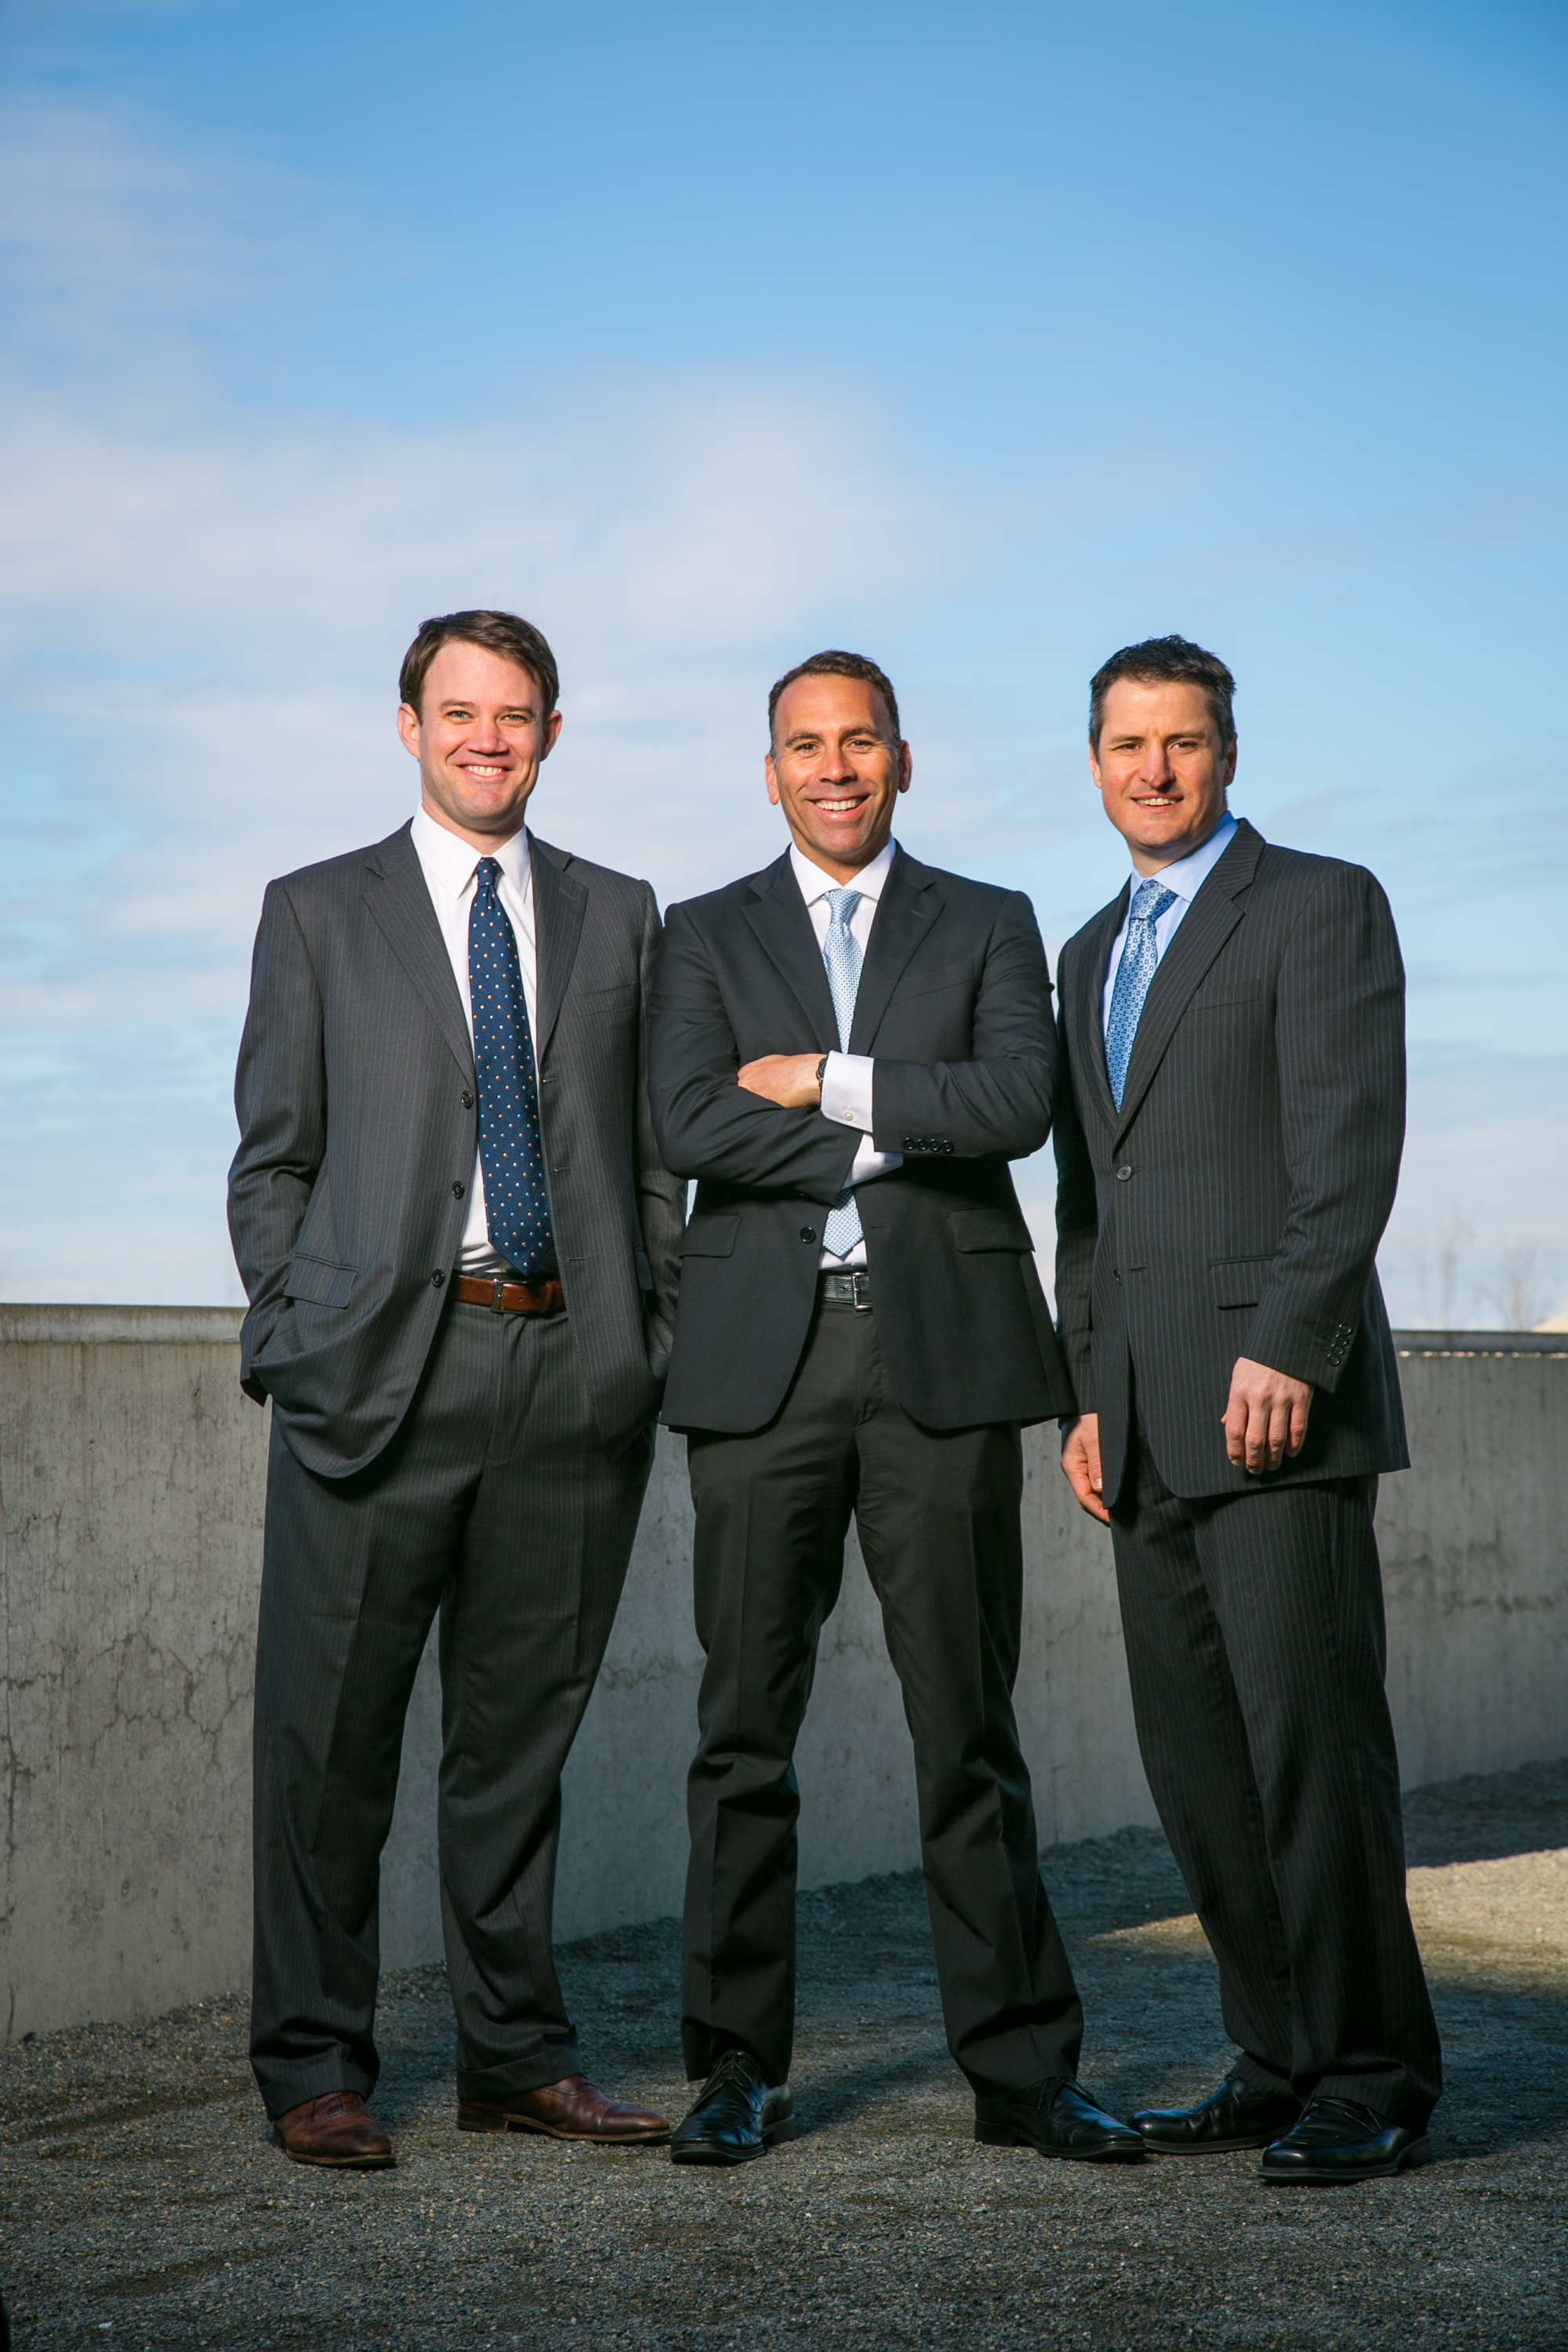 Privateer Holdings co-founders Michael Blue (Chief Financial Officer), Christian Groh (Partner) and Brendan Kennedy (Chief Executive Officer). (Photo: Business Wire)